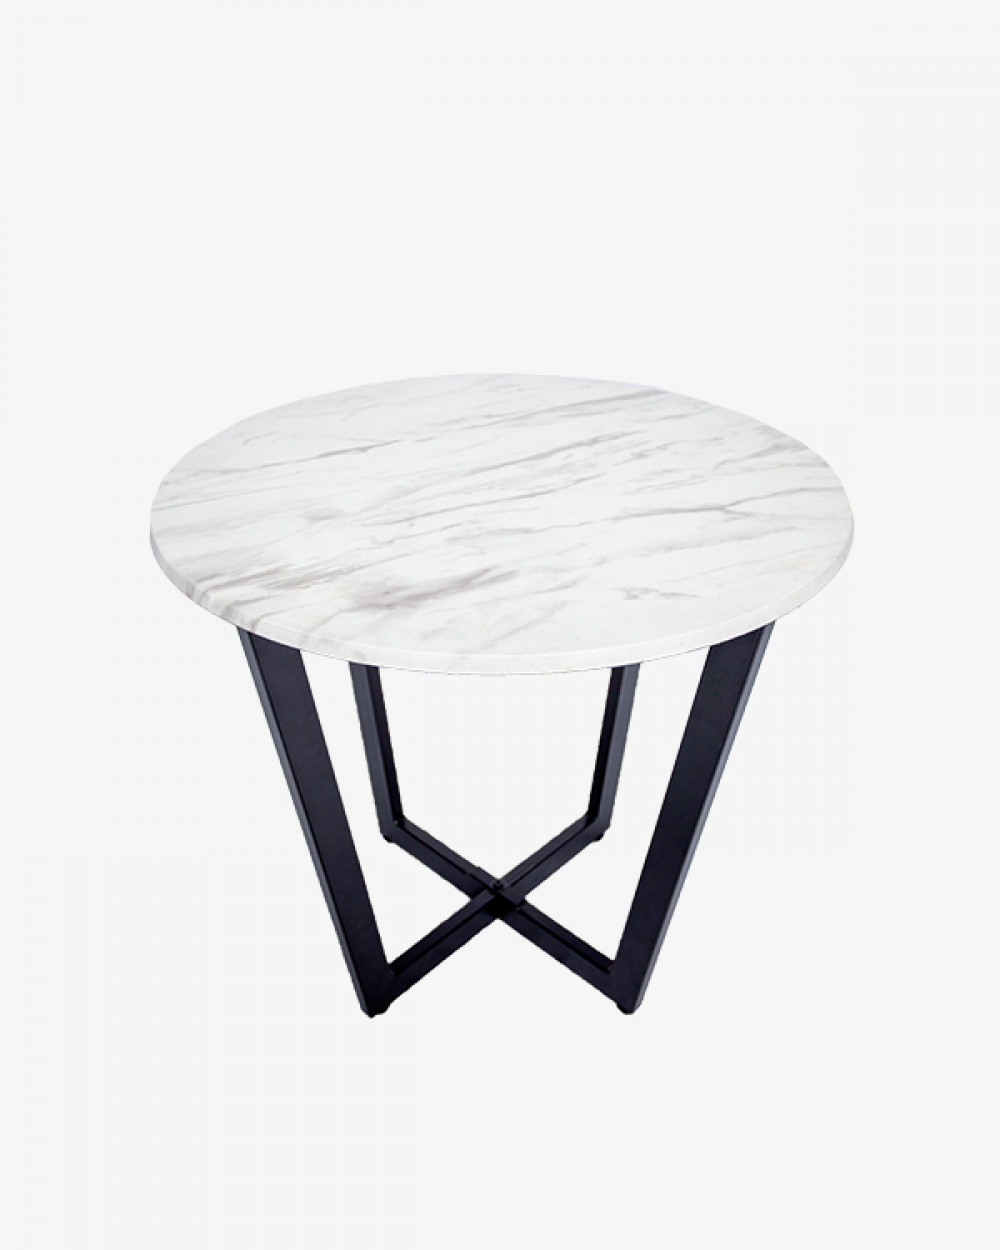 Brilliance Top | Boston Side Table